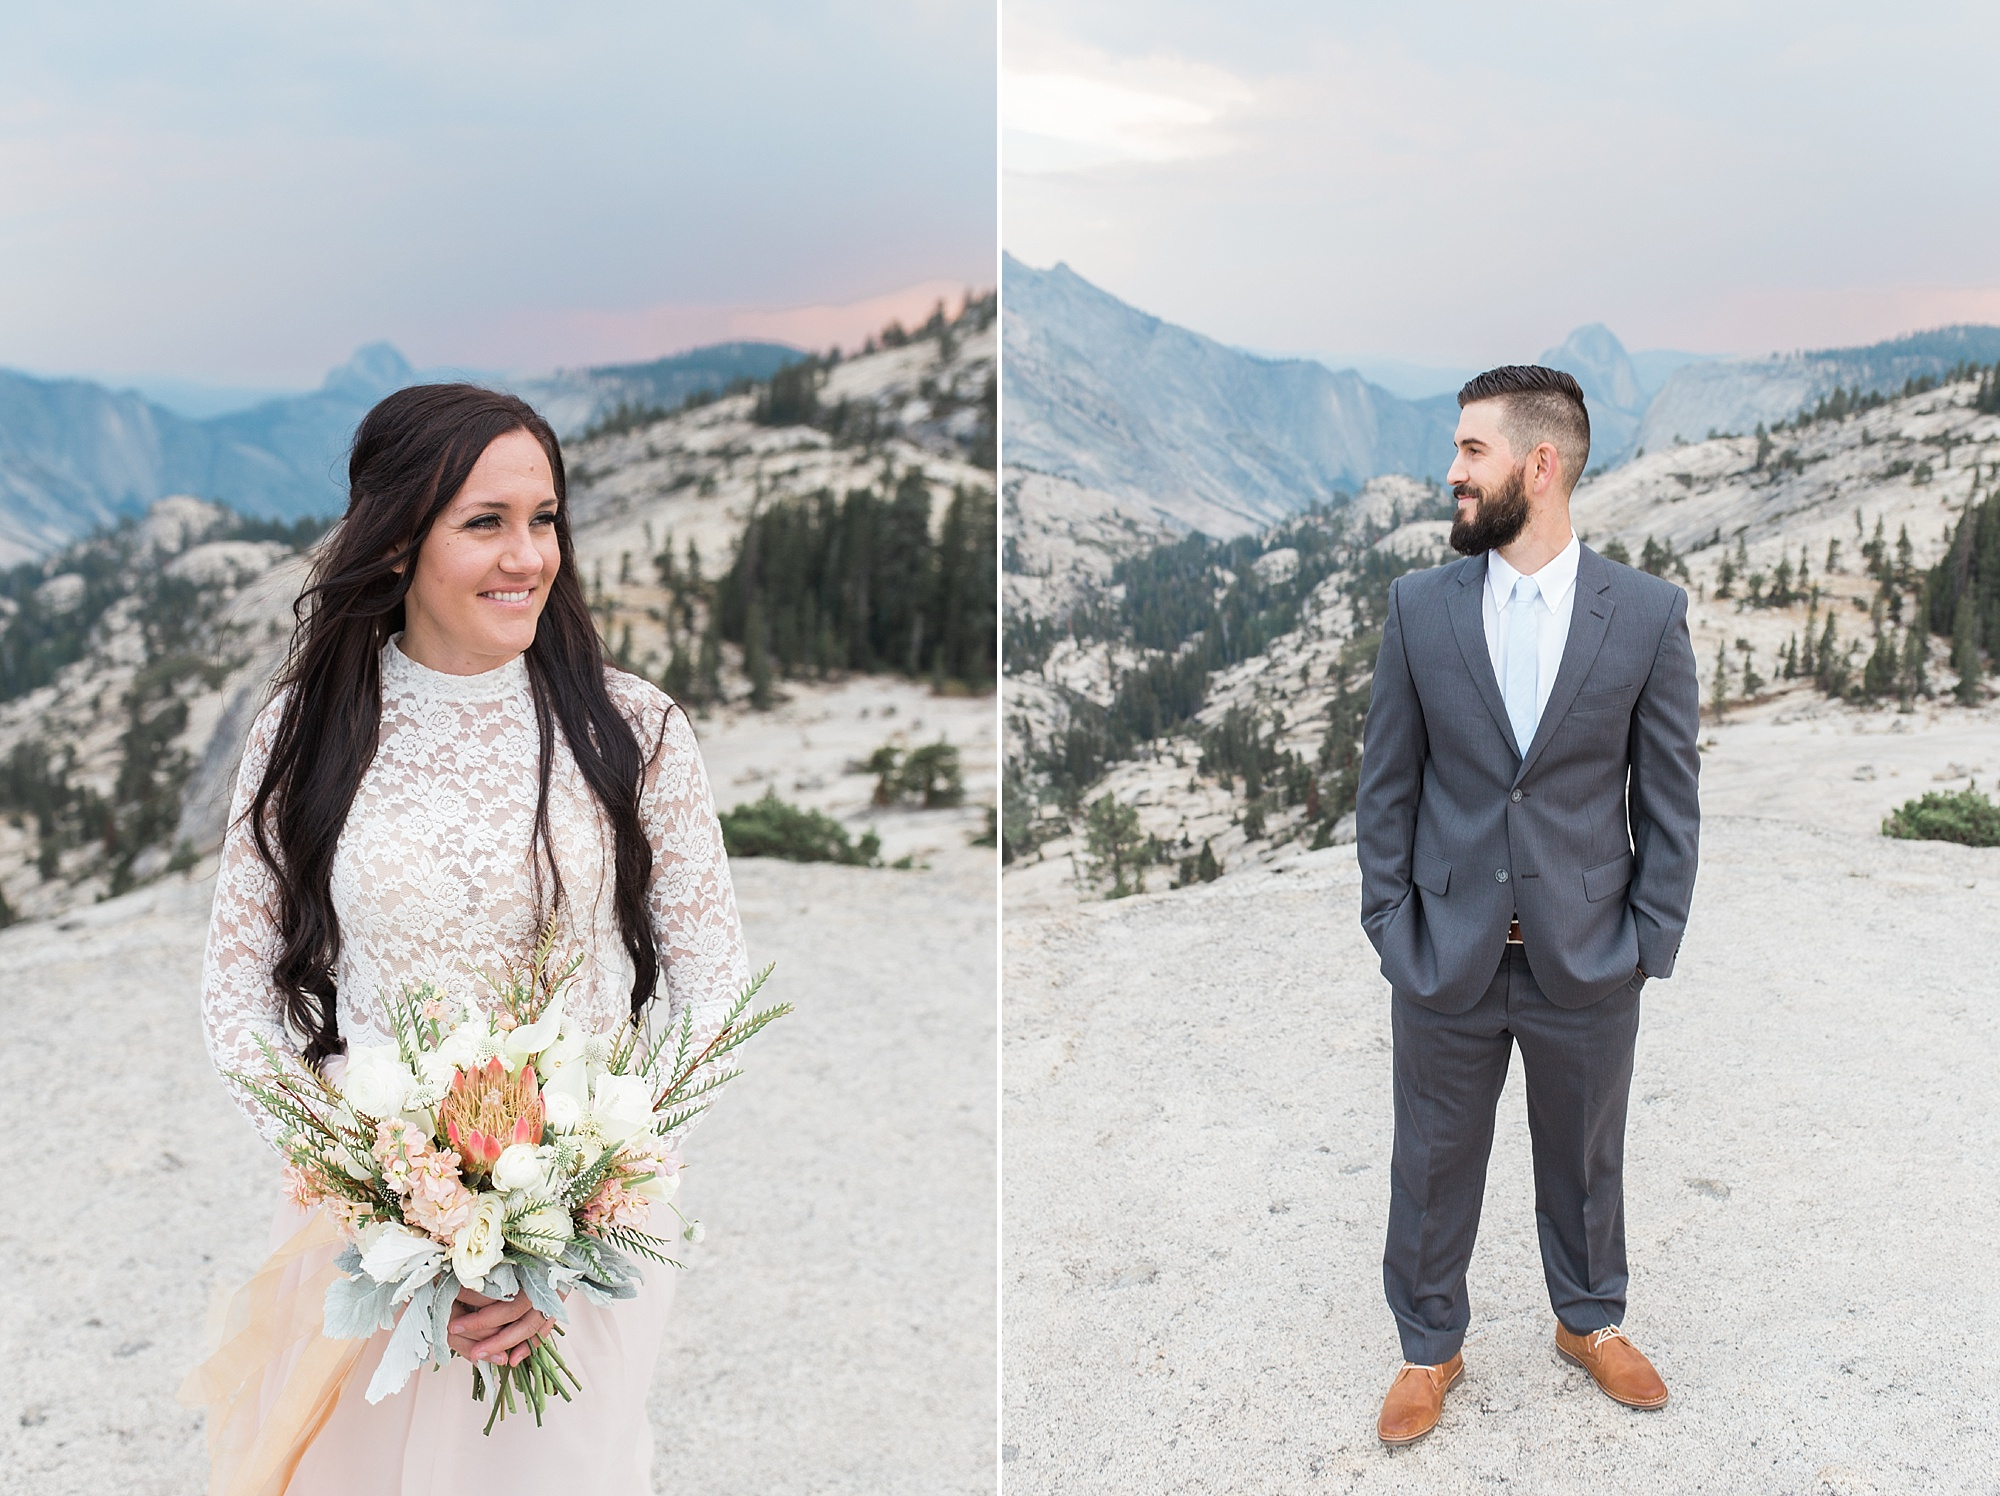 Ashley Baumgartner Photography & Calligraphy Yosemite Vow Renewal featured on 100 Layer Cake_0012.jpg